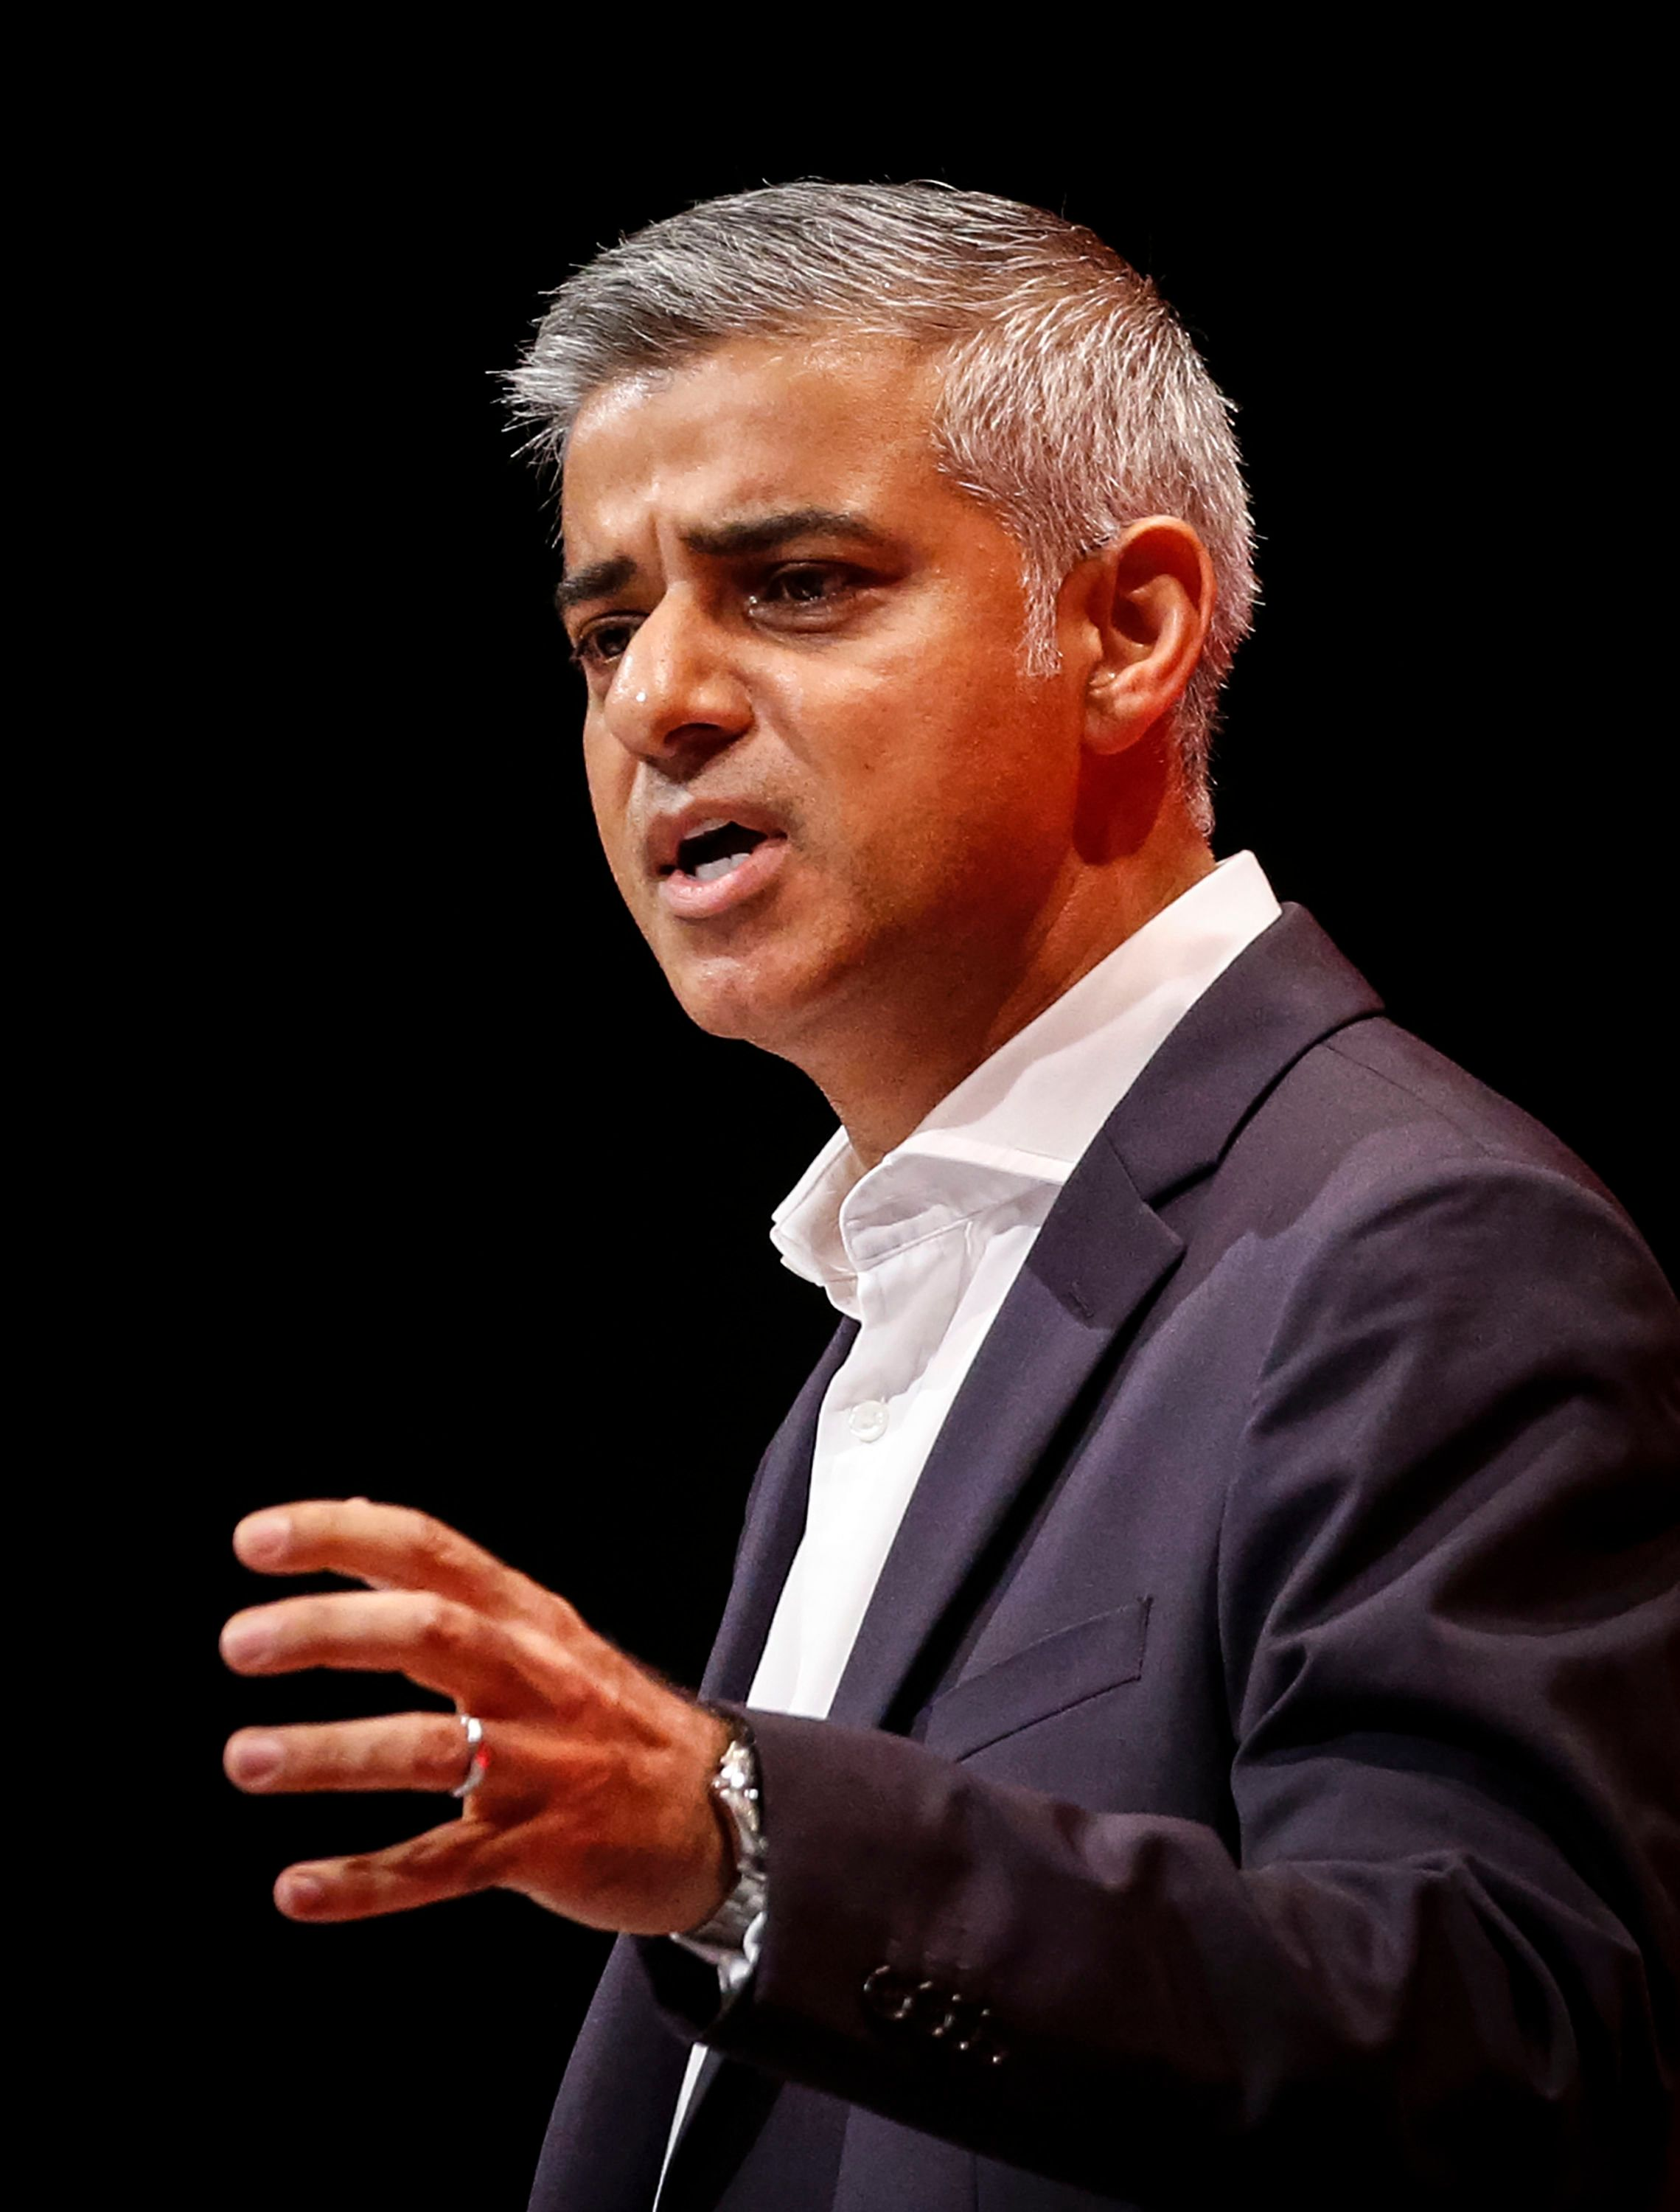 London Knife Offenders To Get GPS Tags After Release From Jail, Sadiq Khan